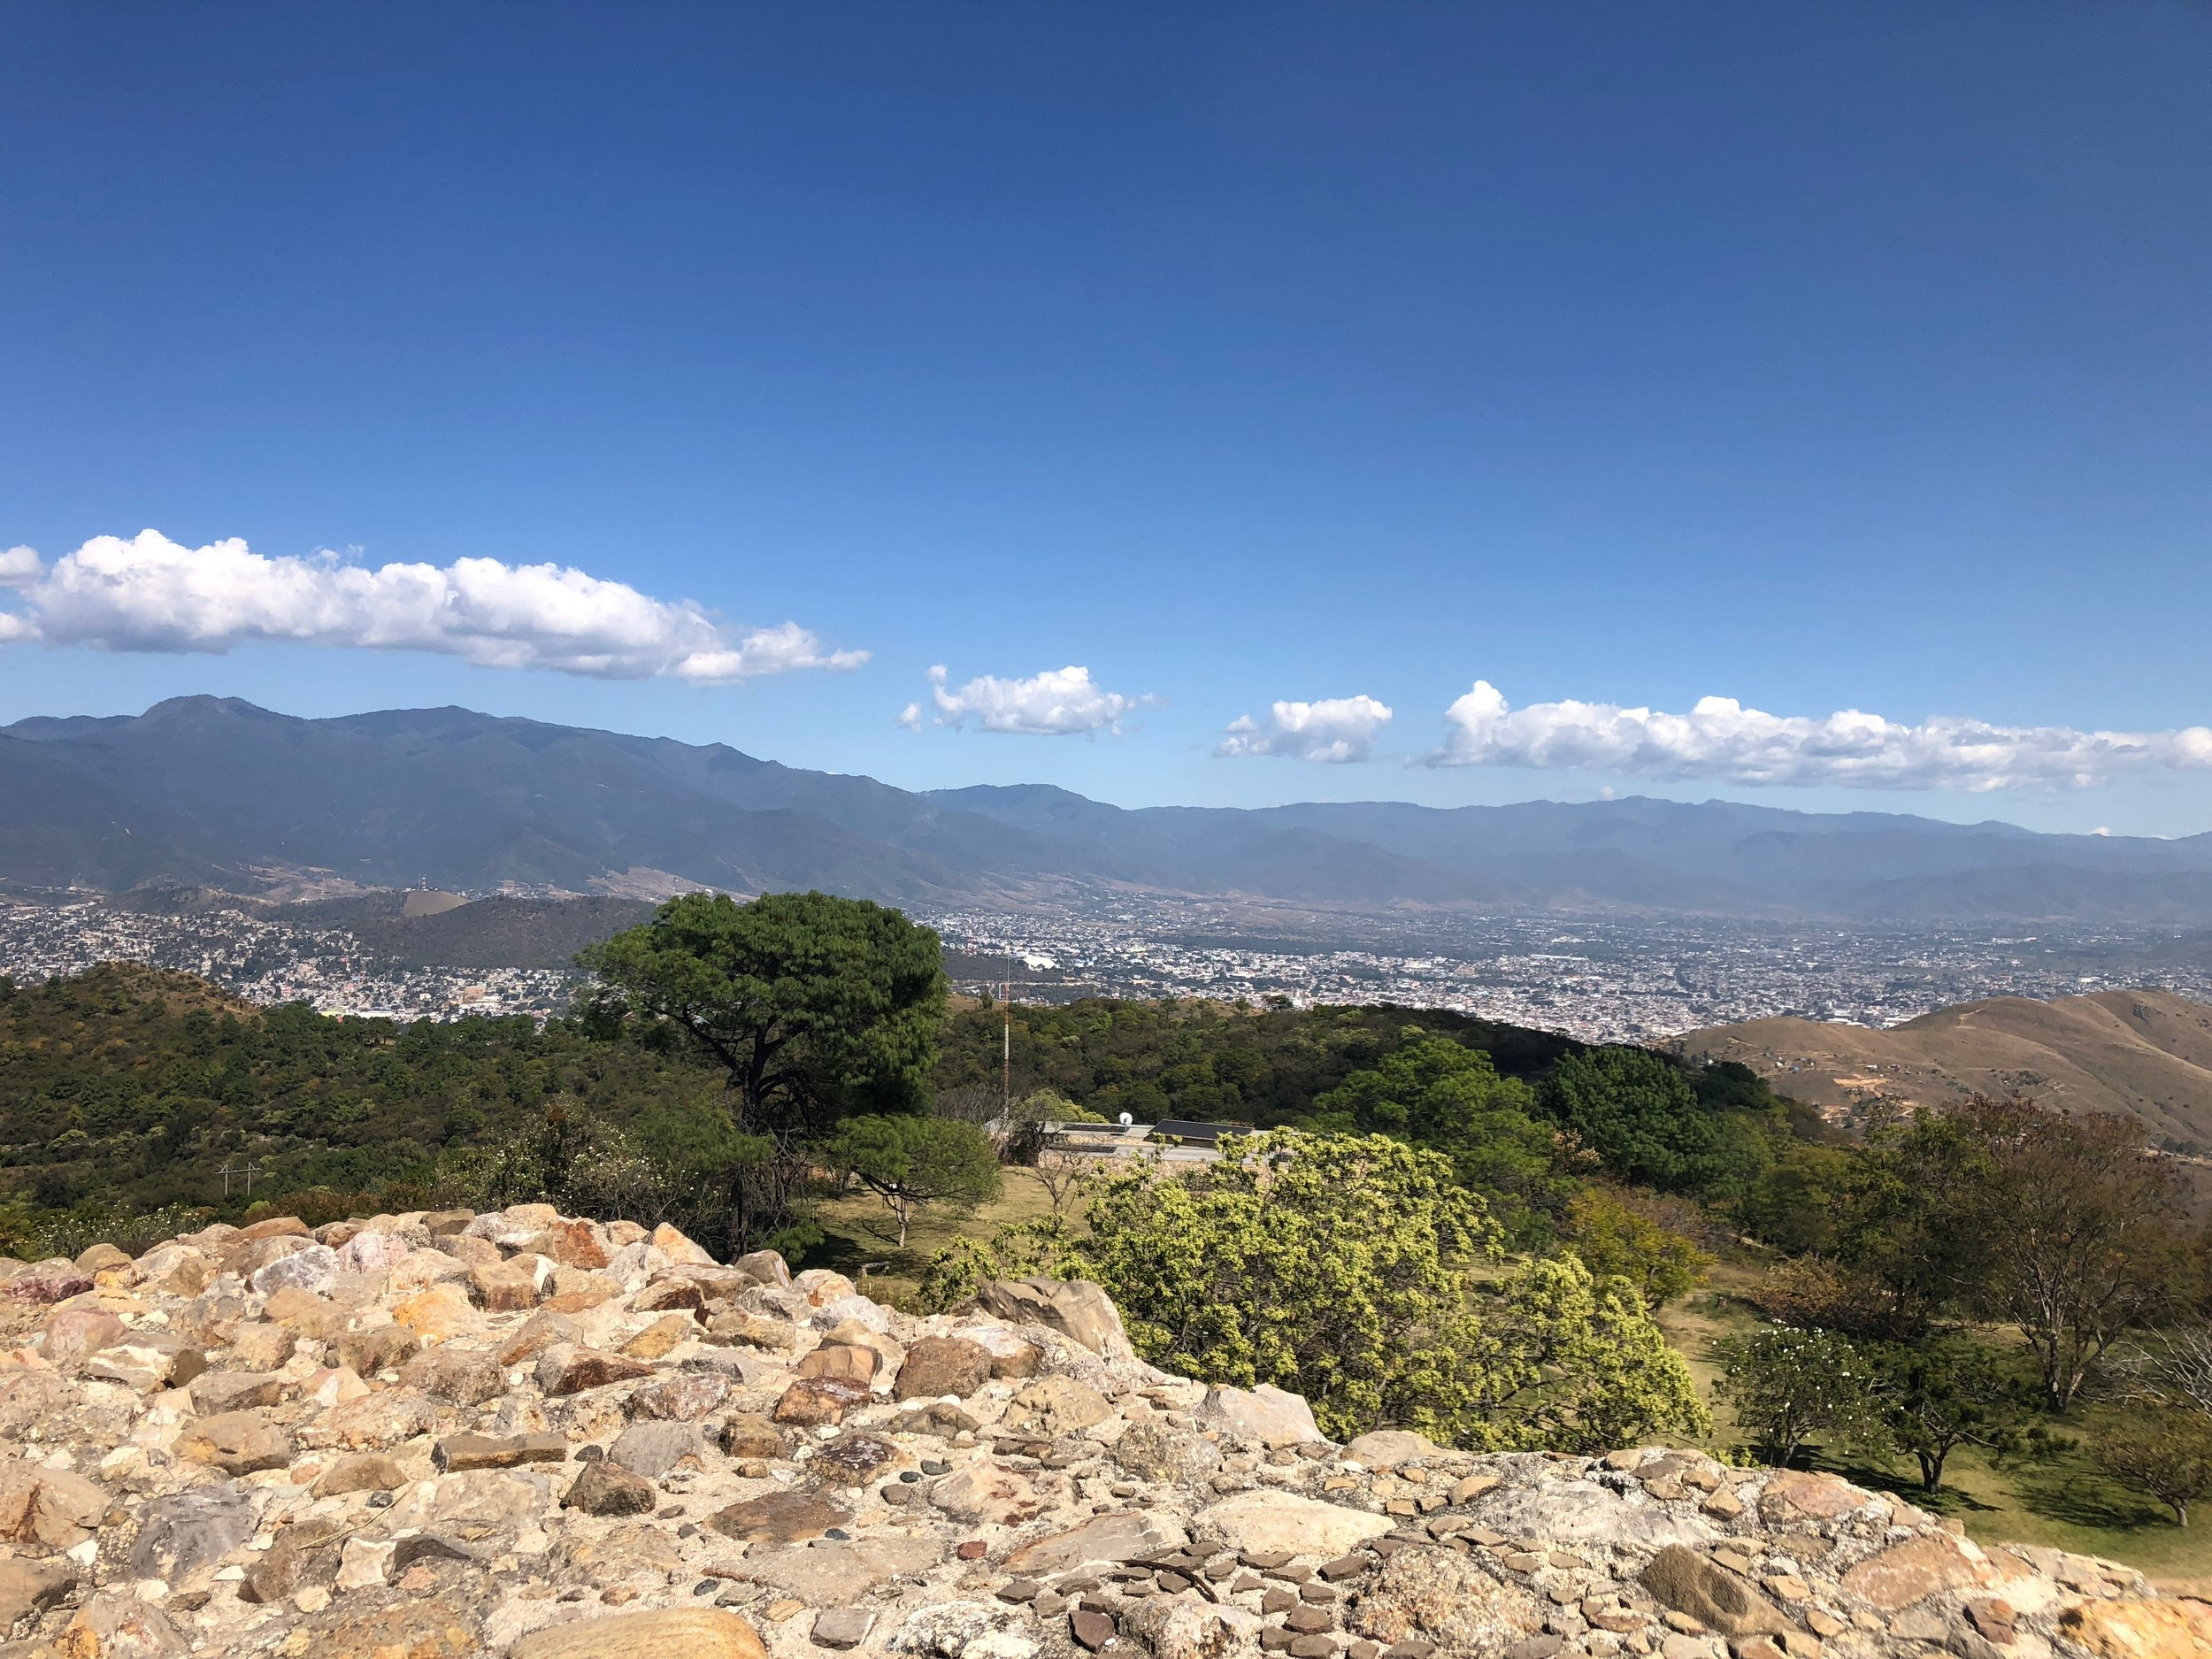 A view of Oaxaca from Monte Alban